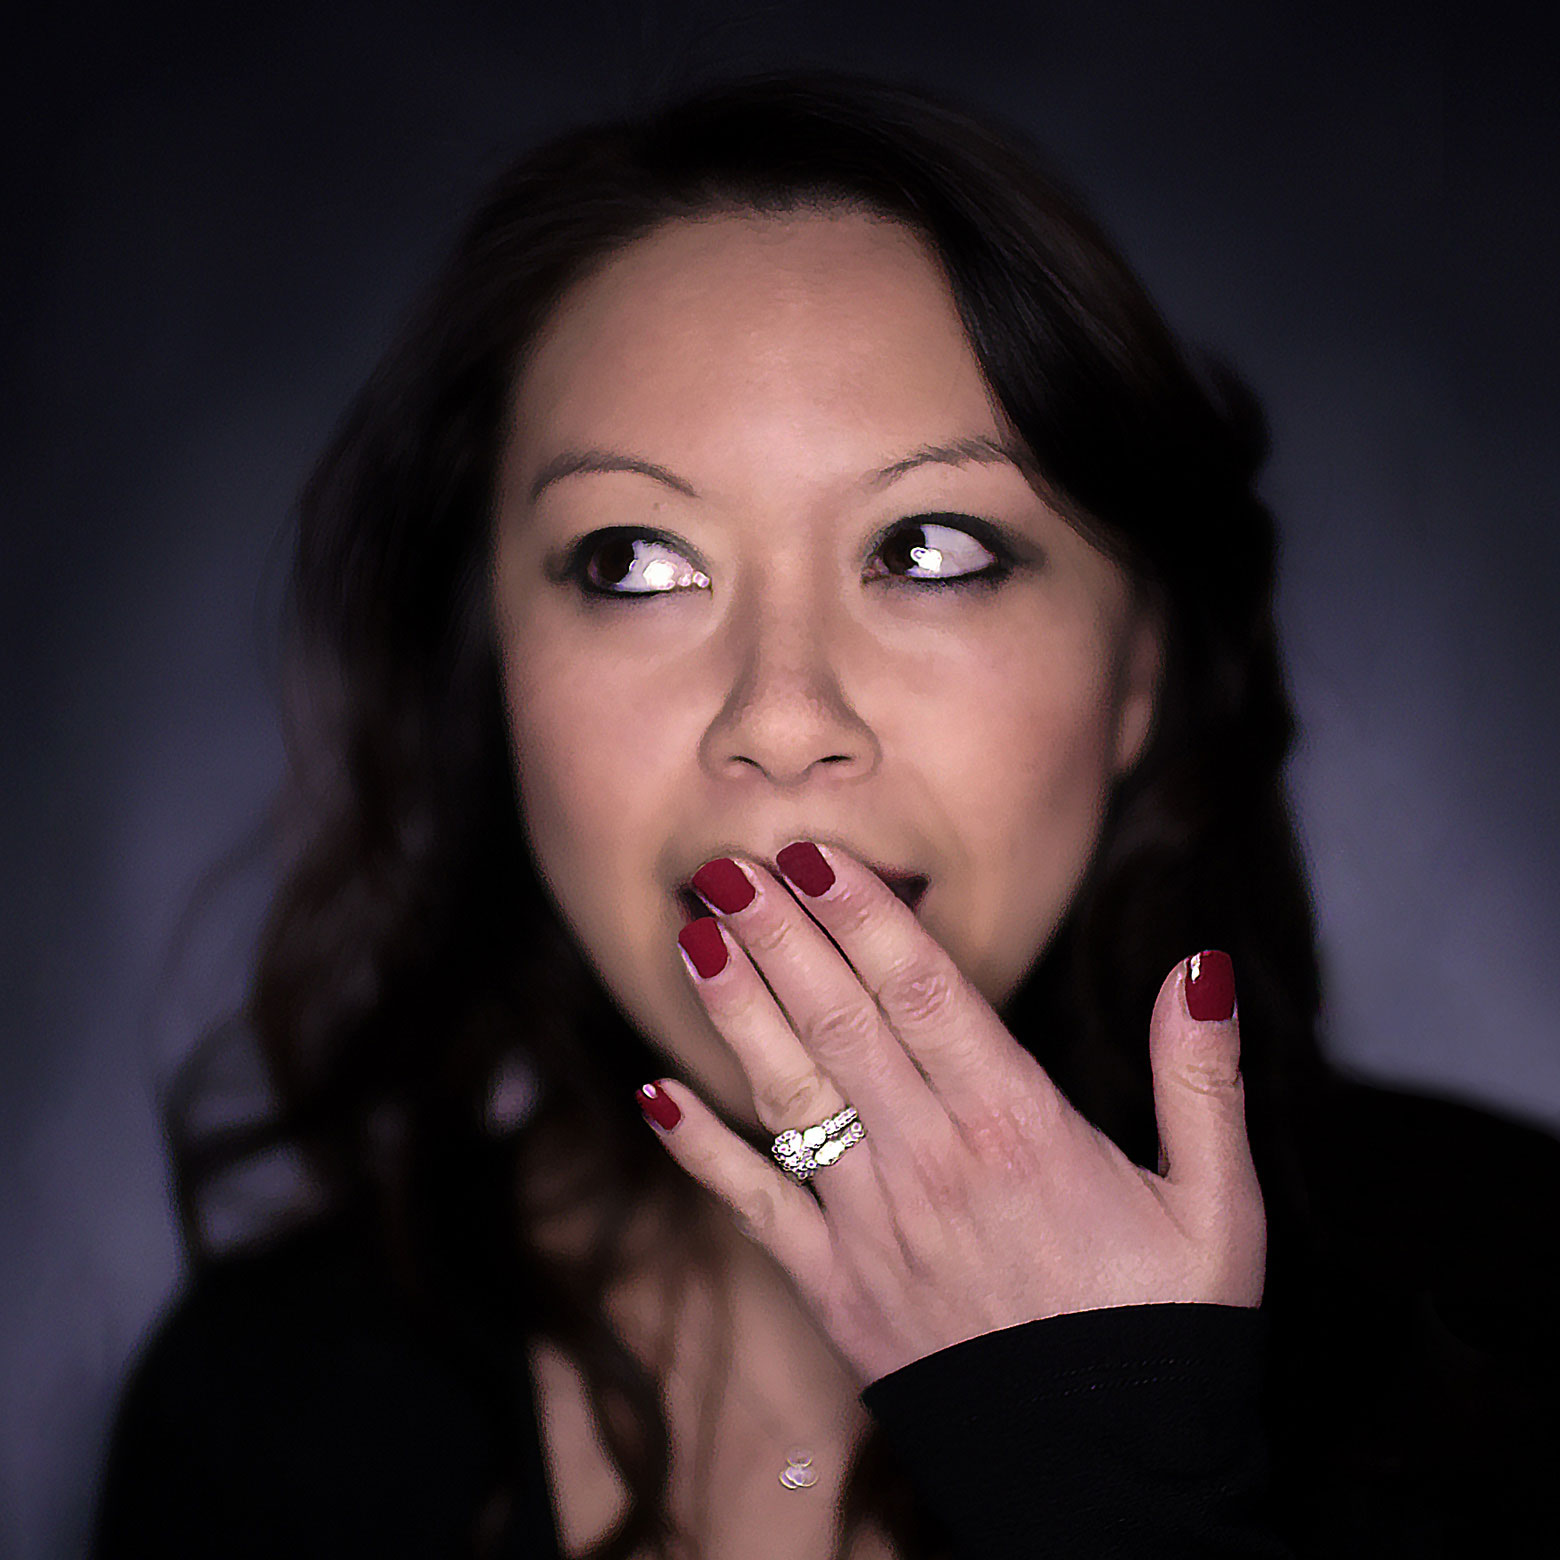 Thanh Catachanas Client Services Director - and... pose